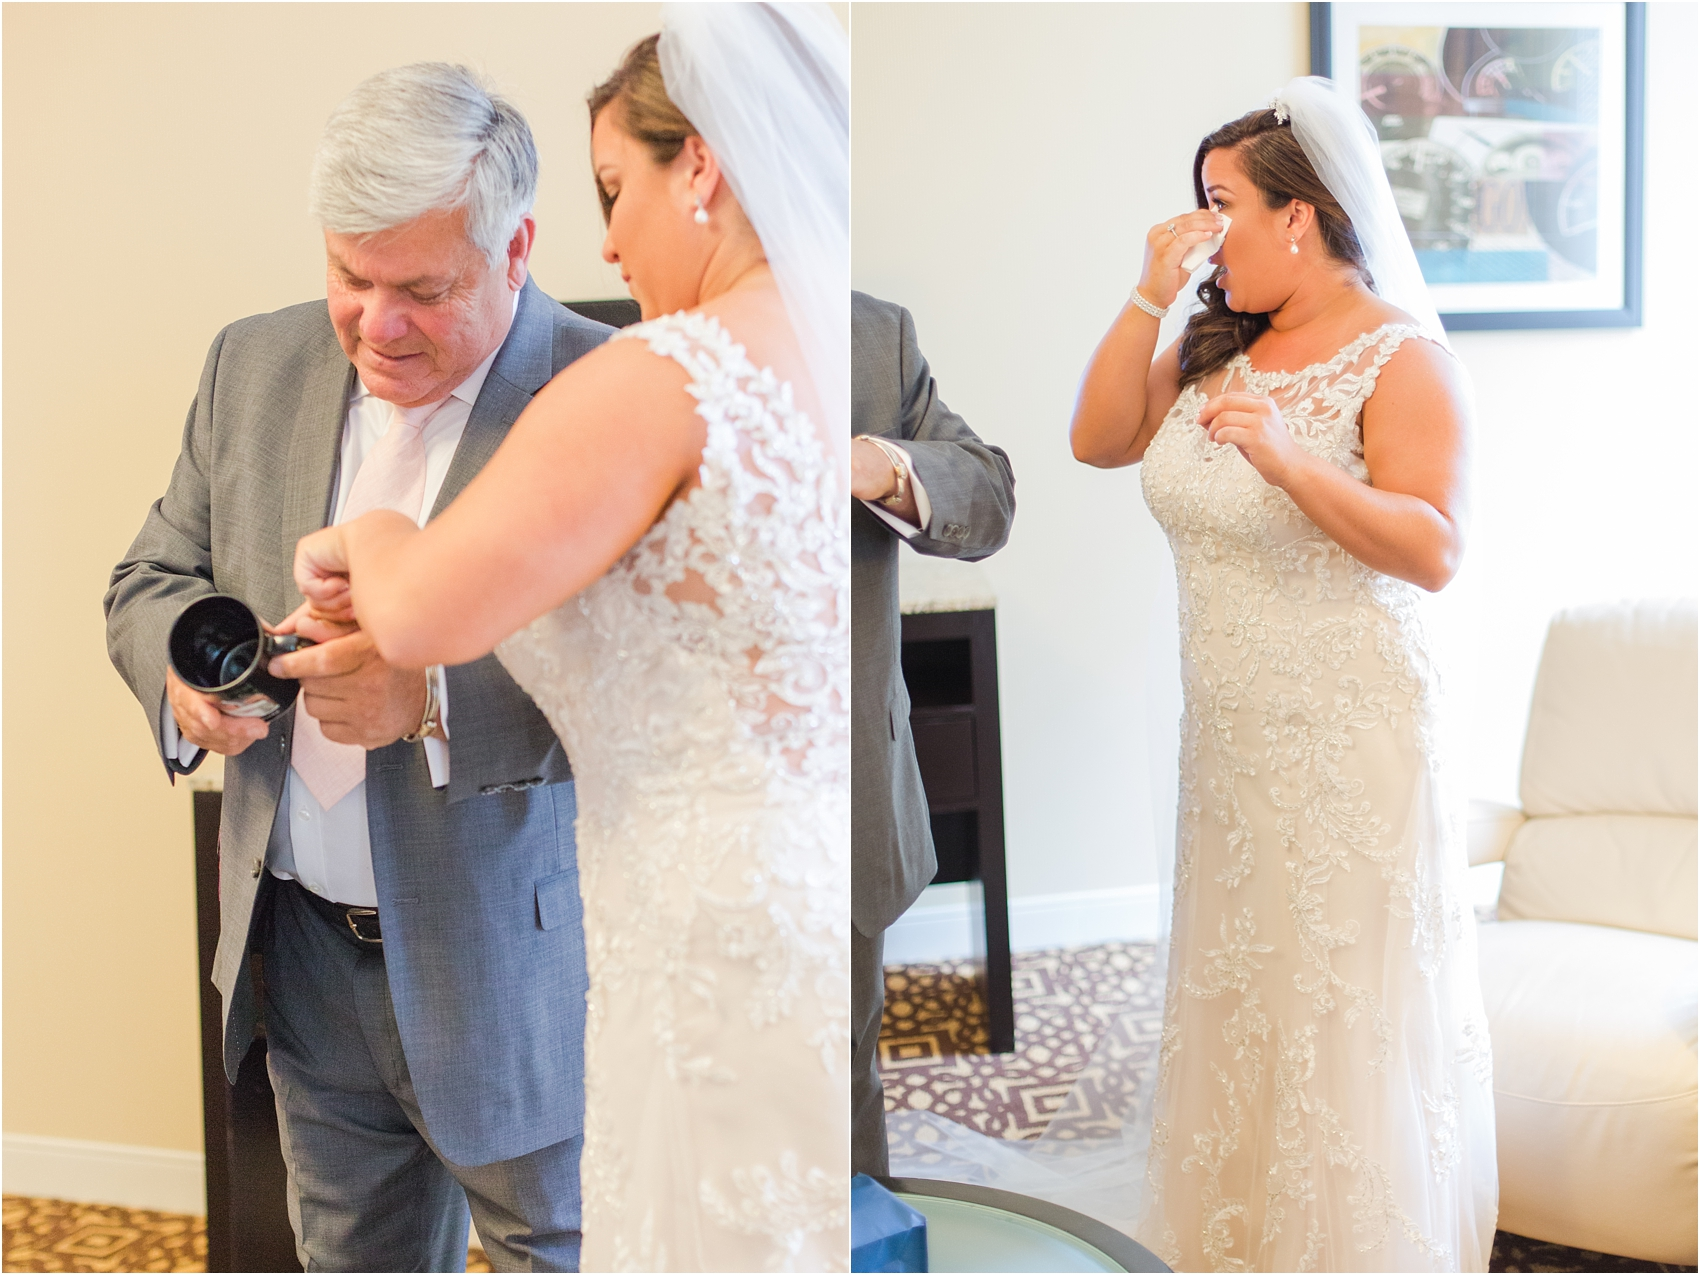 father-and-bride-share-emotional-first-look-on-wedding-day-photos-in-detroit-michigan-by-courtney-carolyn-photography_0051.jpg